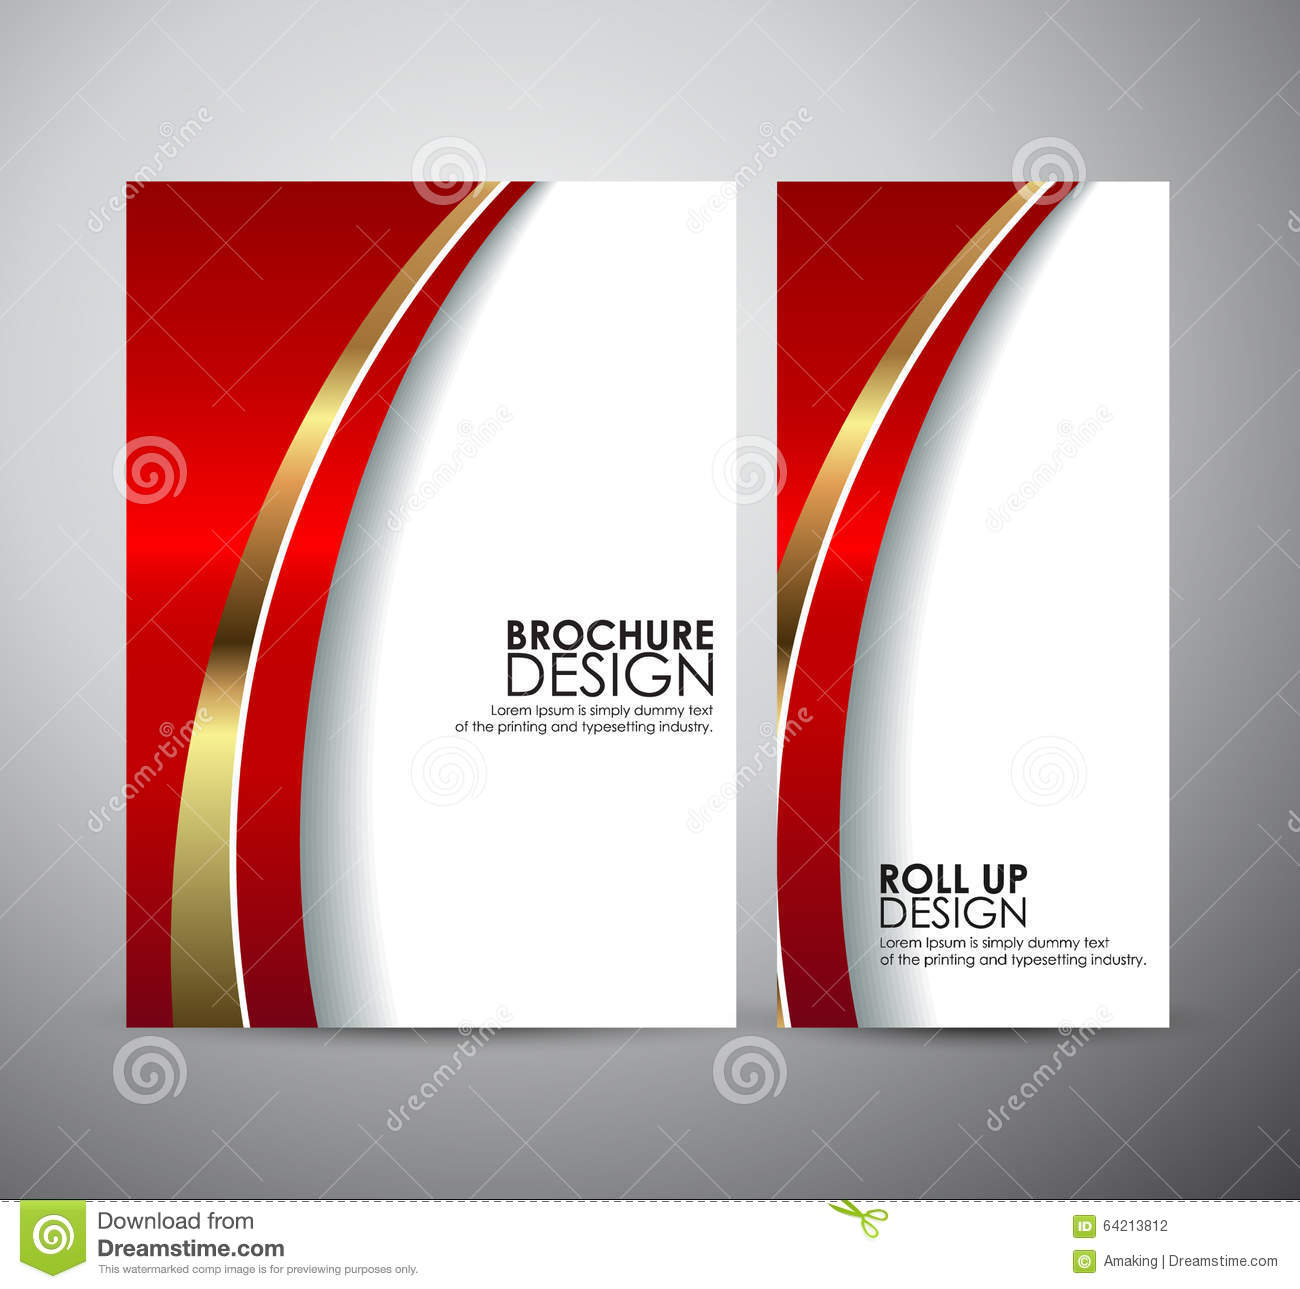 Brochure business design abstract red line background for Background for brochure design